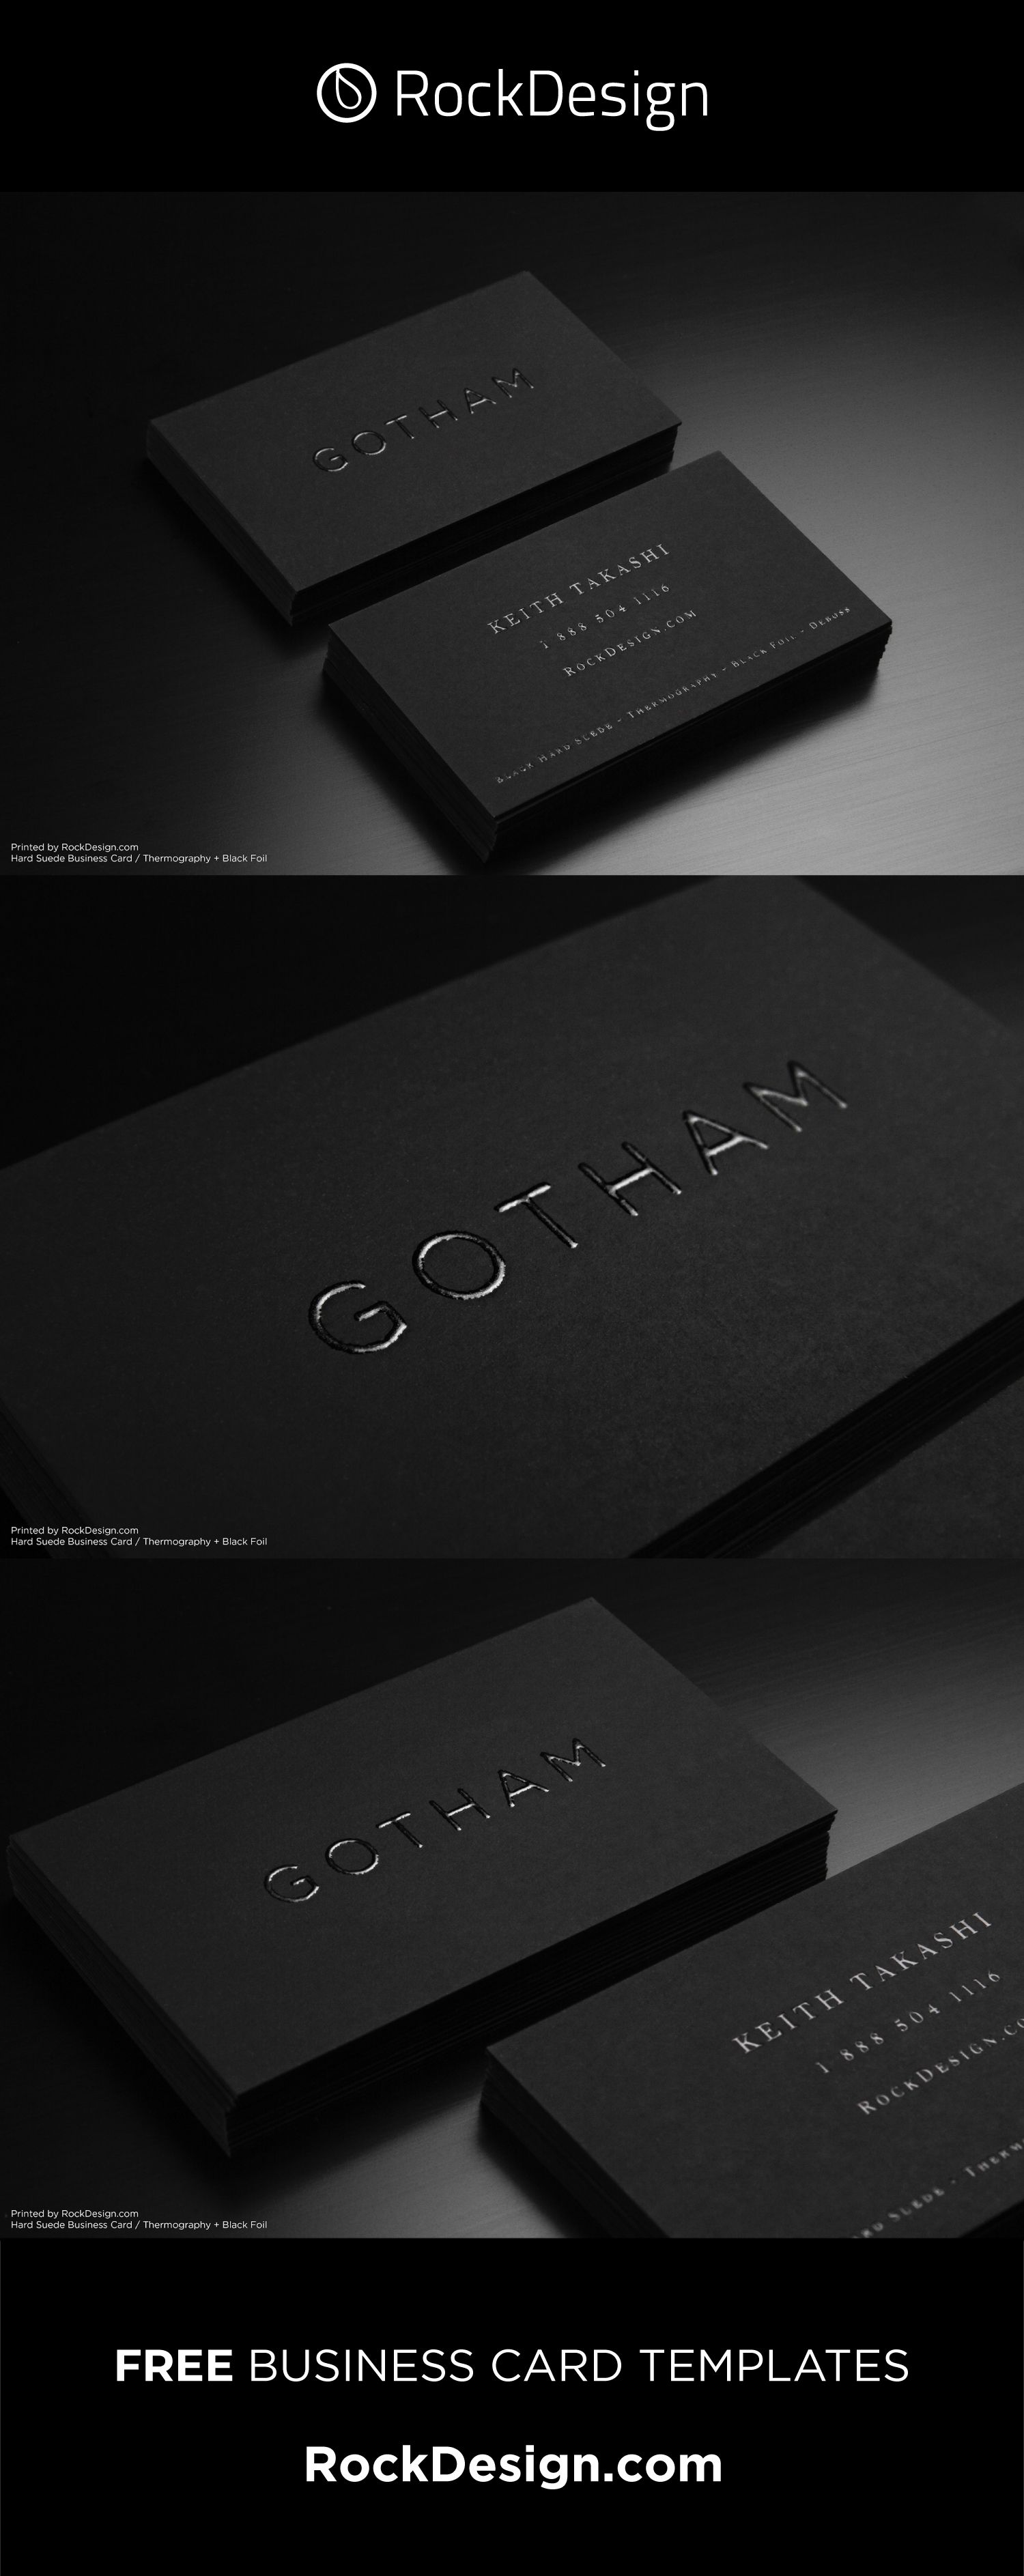 Minimalistic Black Suede Feeling Business Card With Thermography Gotham Business Card Design Minimalist Business Cards Creative Business Cards Layout